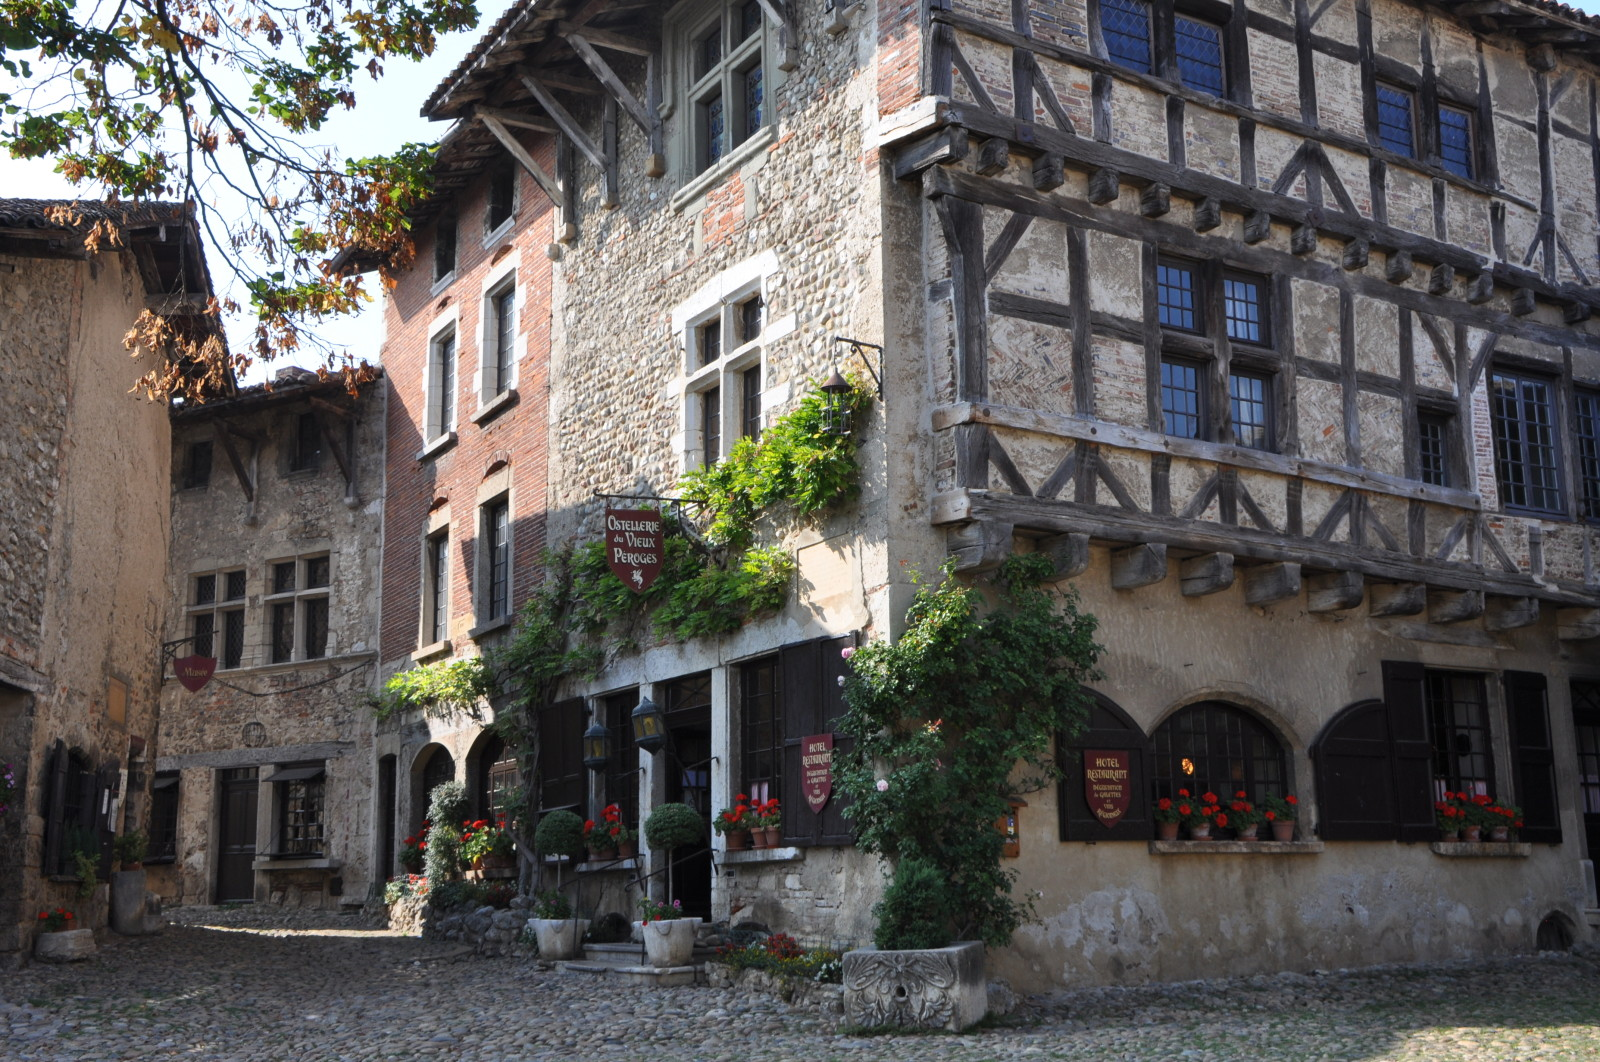 Only at the heart of Lyon you can find such charming places like this townhouse from 16th century.